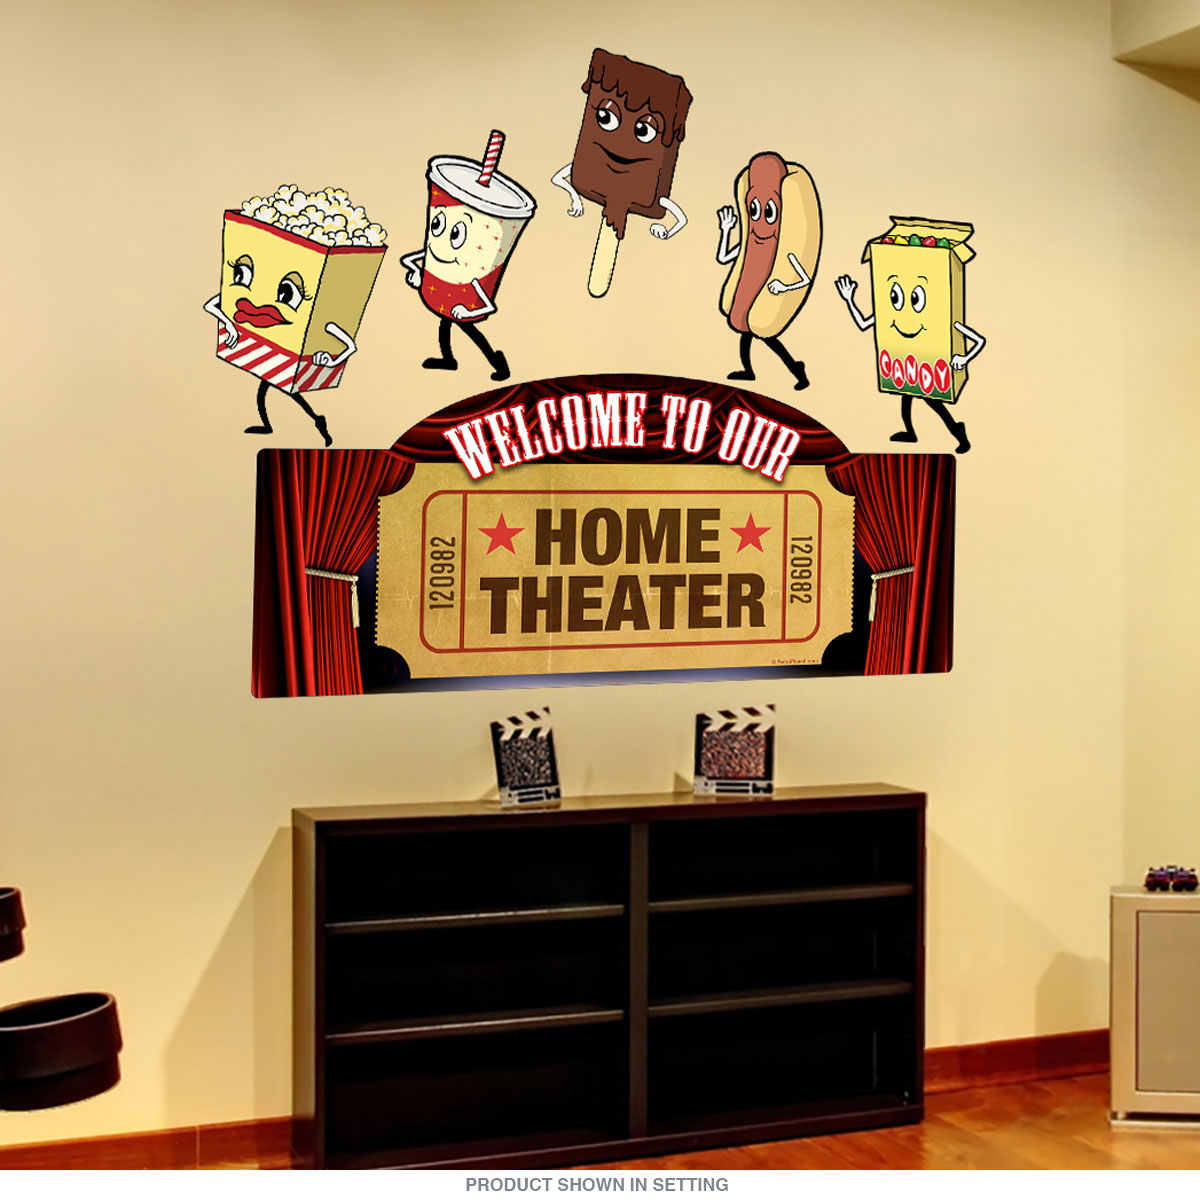 Home Theater Welcome Snacks Wall Decal Set | Movie Decor ...